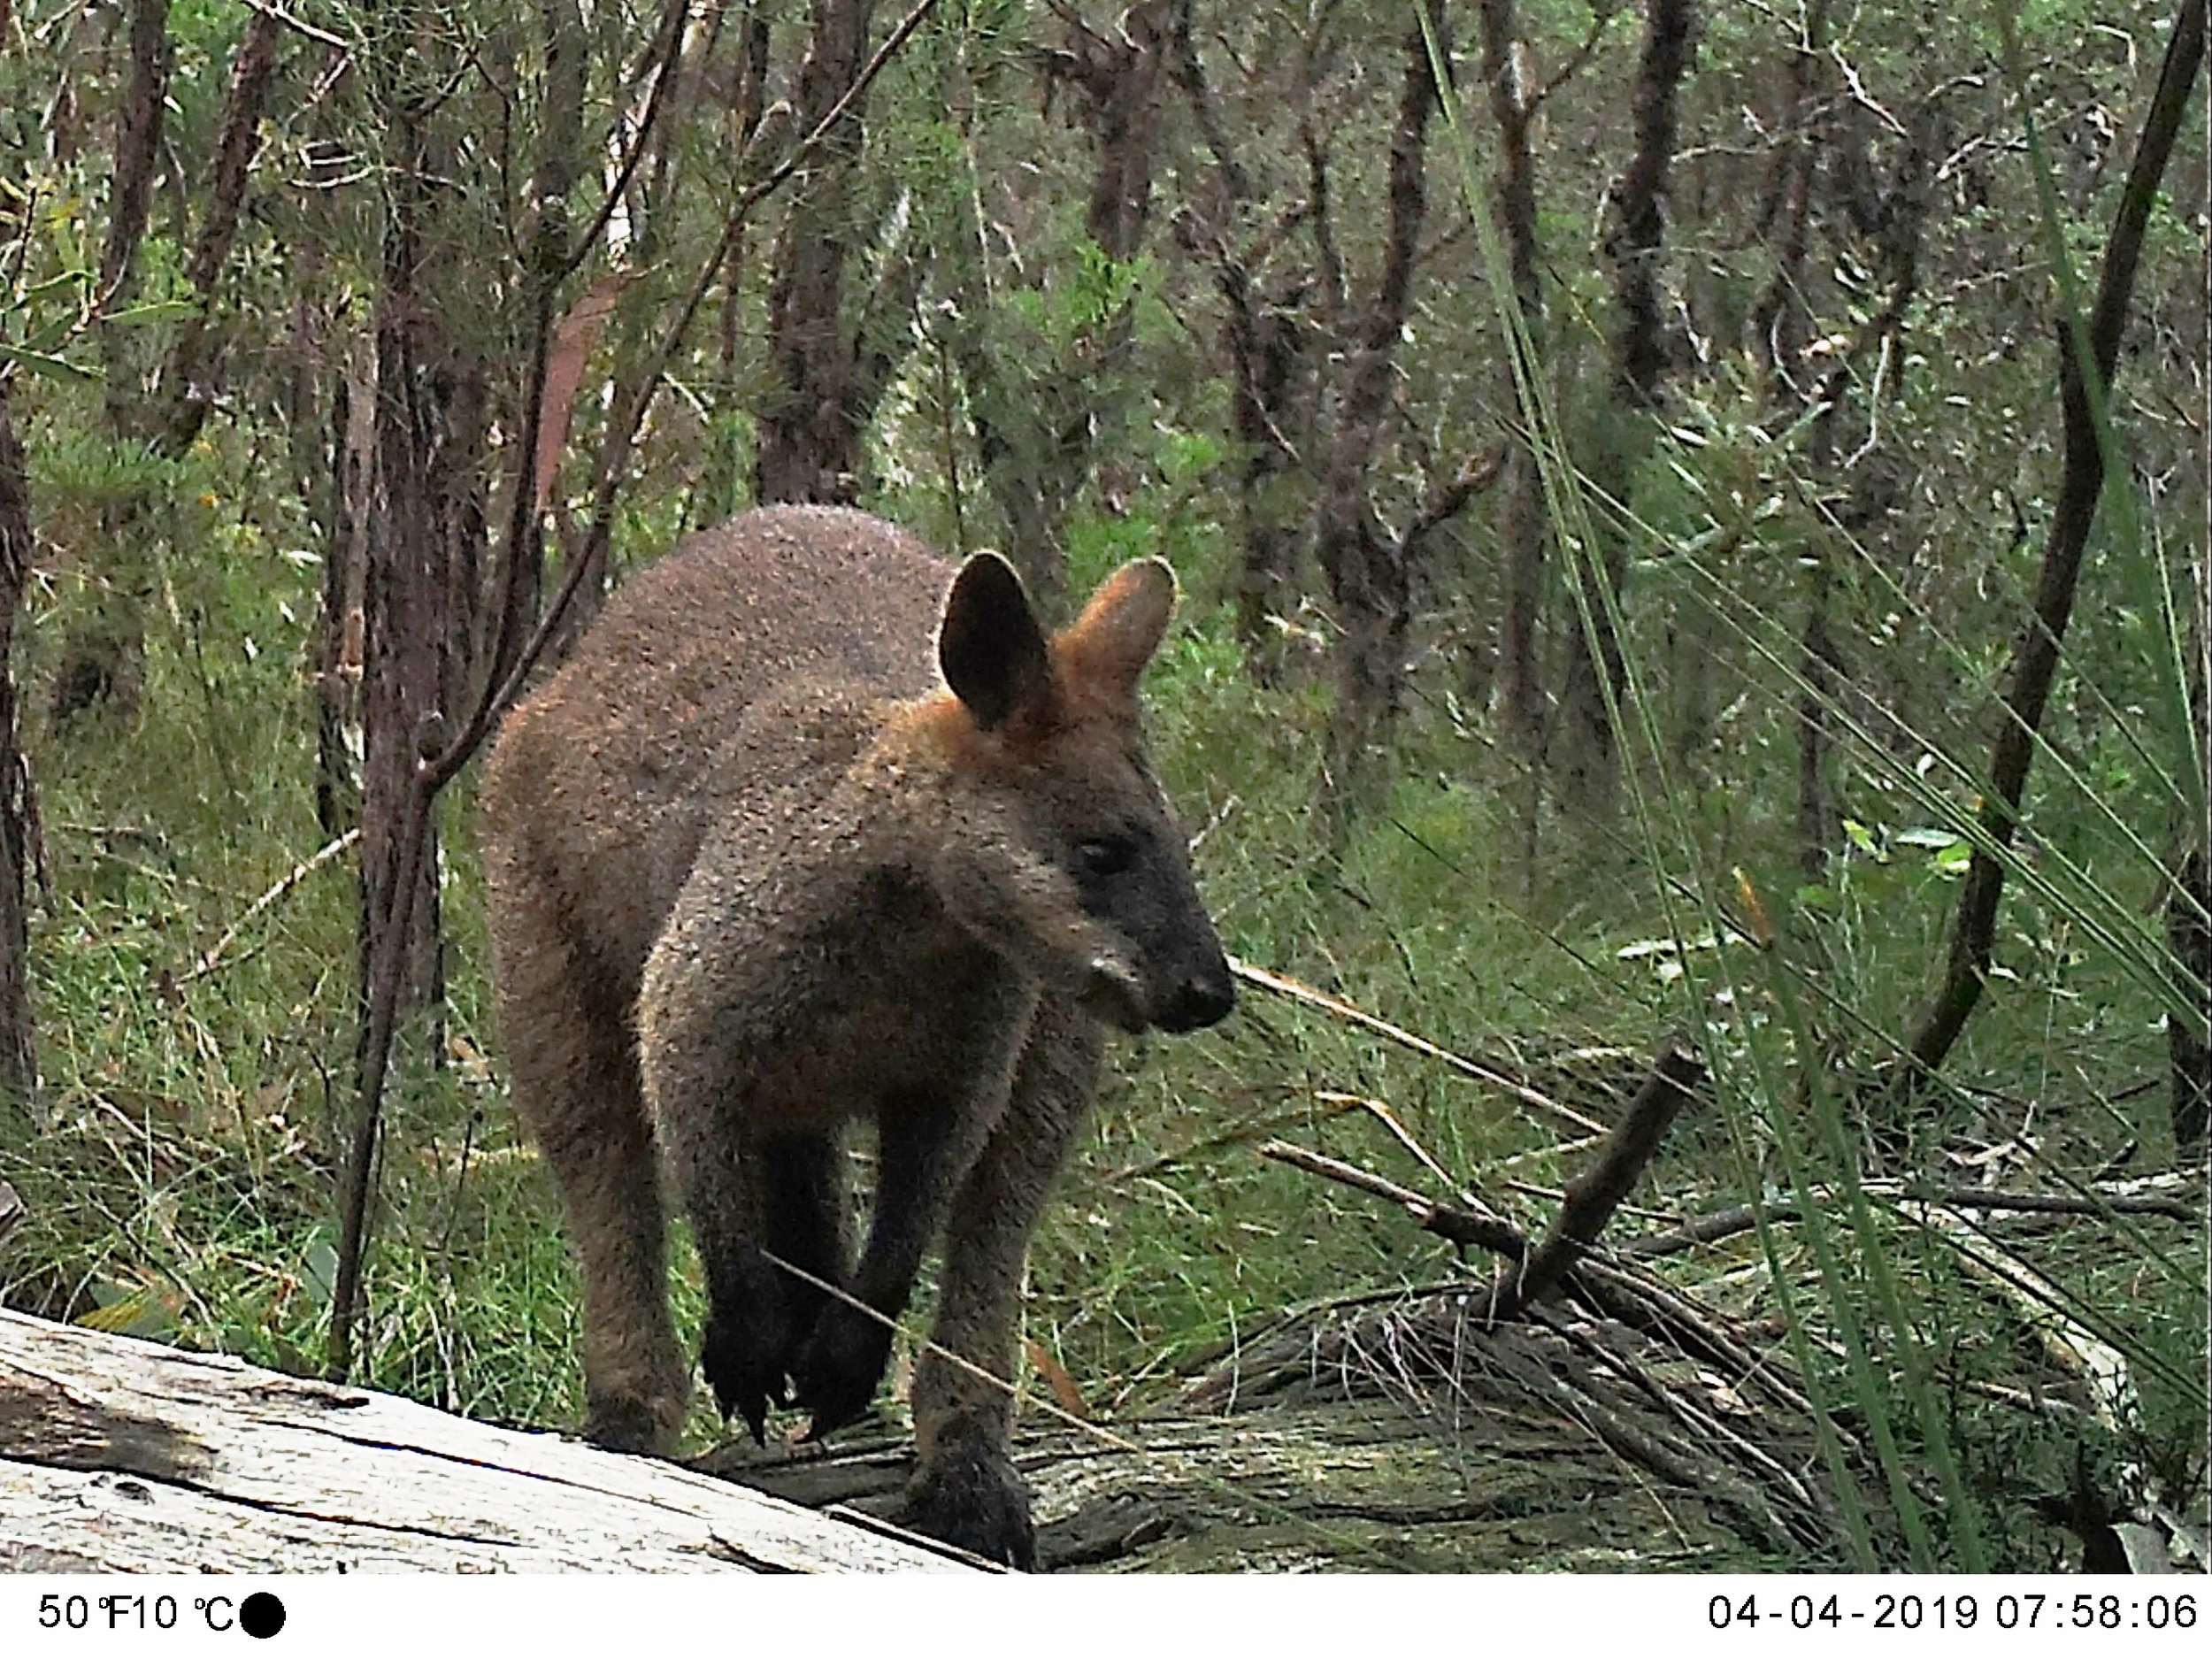 Macropod caught on Citizen Science Monitoring project camera.jpg